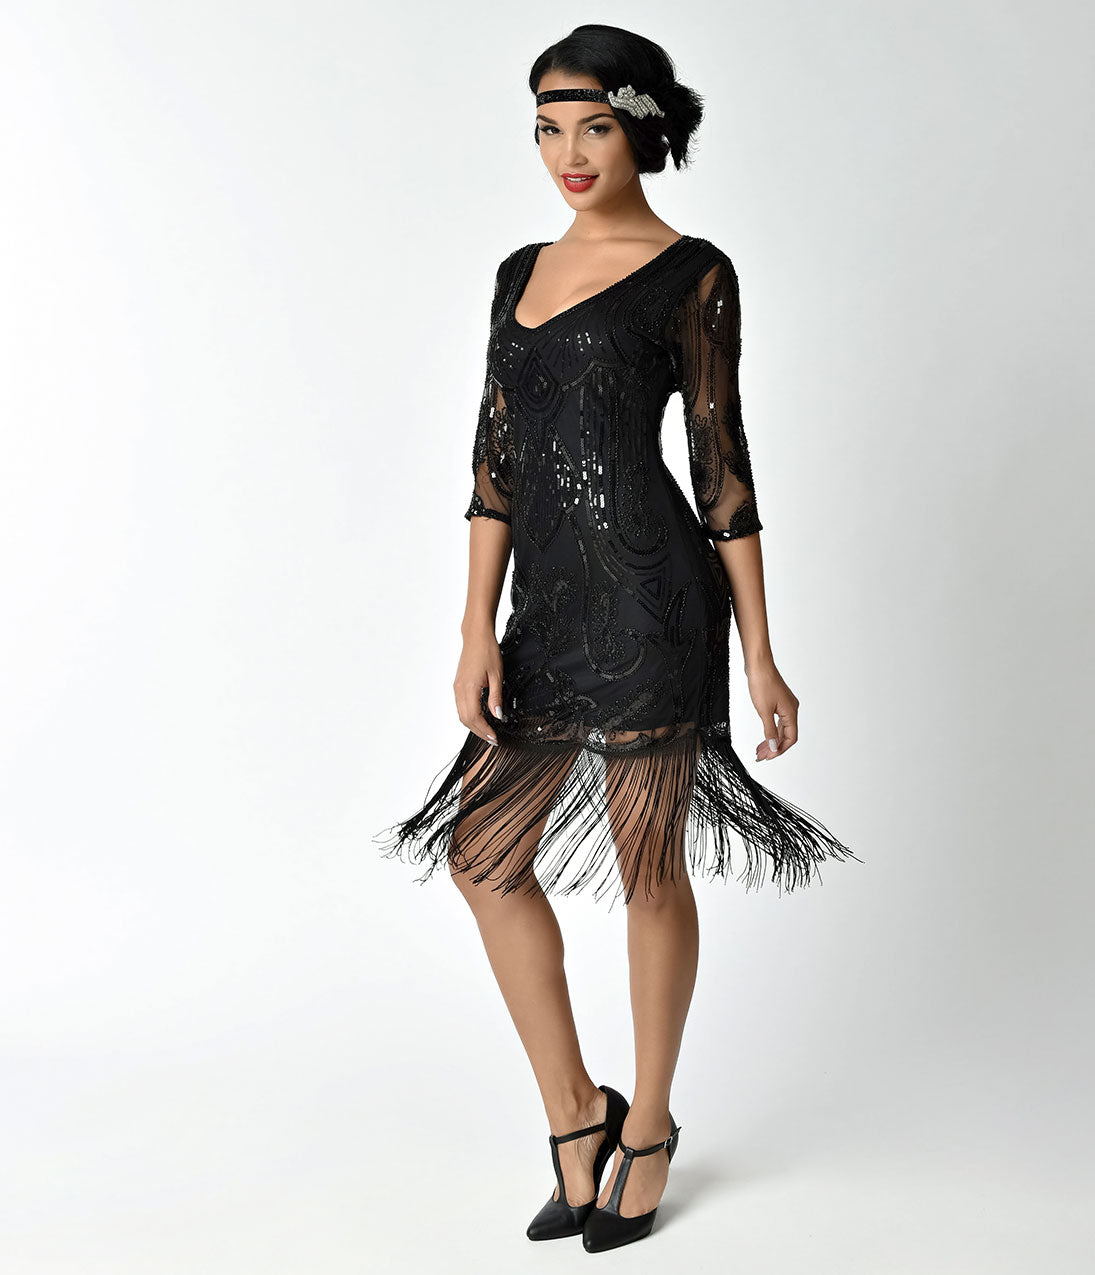 50 Vintage Halloween Costume Ideas Unique Vintage Black Beaded  Sequin Margaux Sleeved Fringe Cocktail Dress $110.00 AT vintagedancer.com